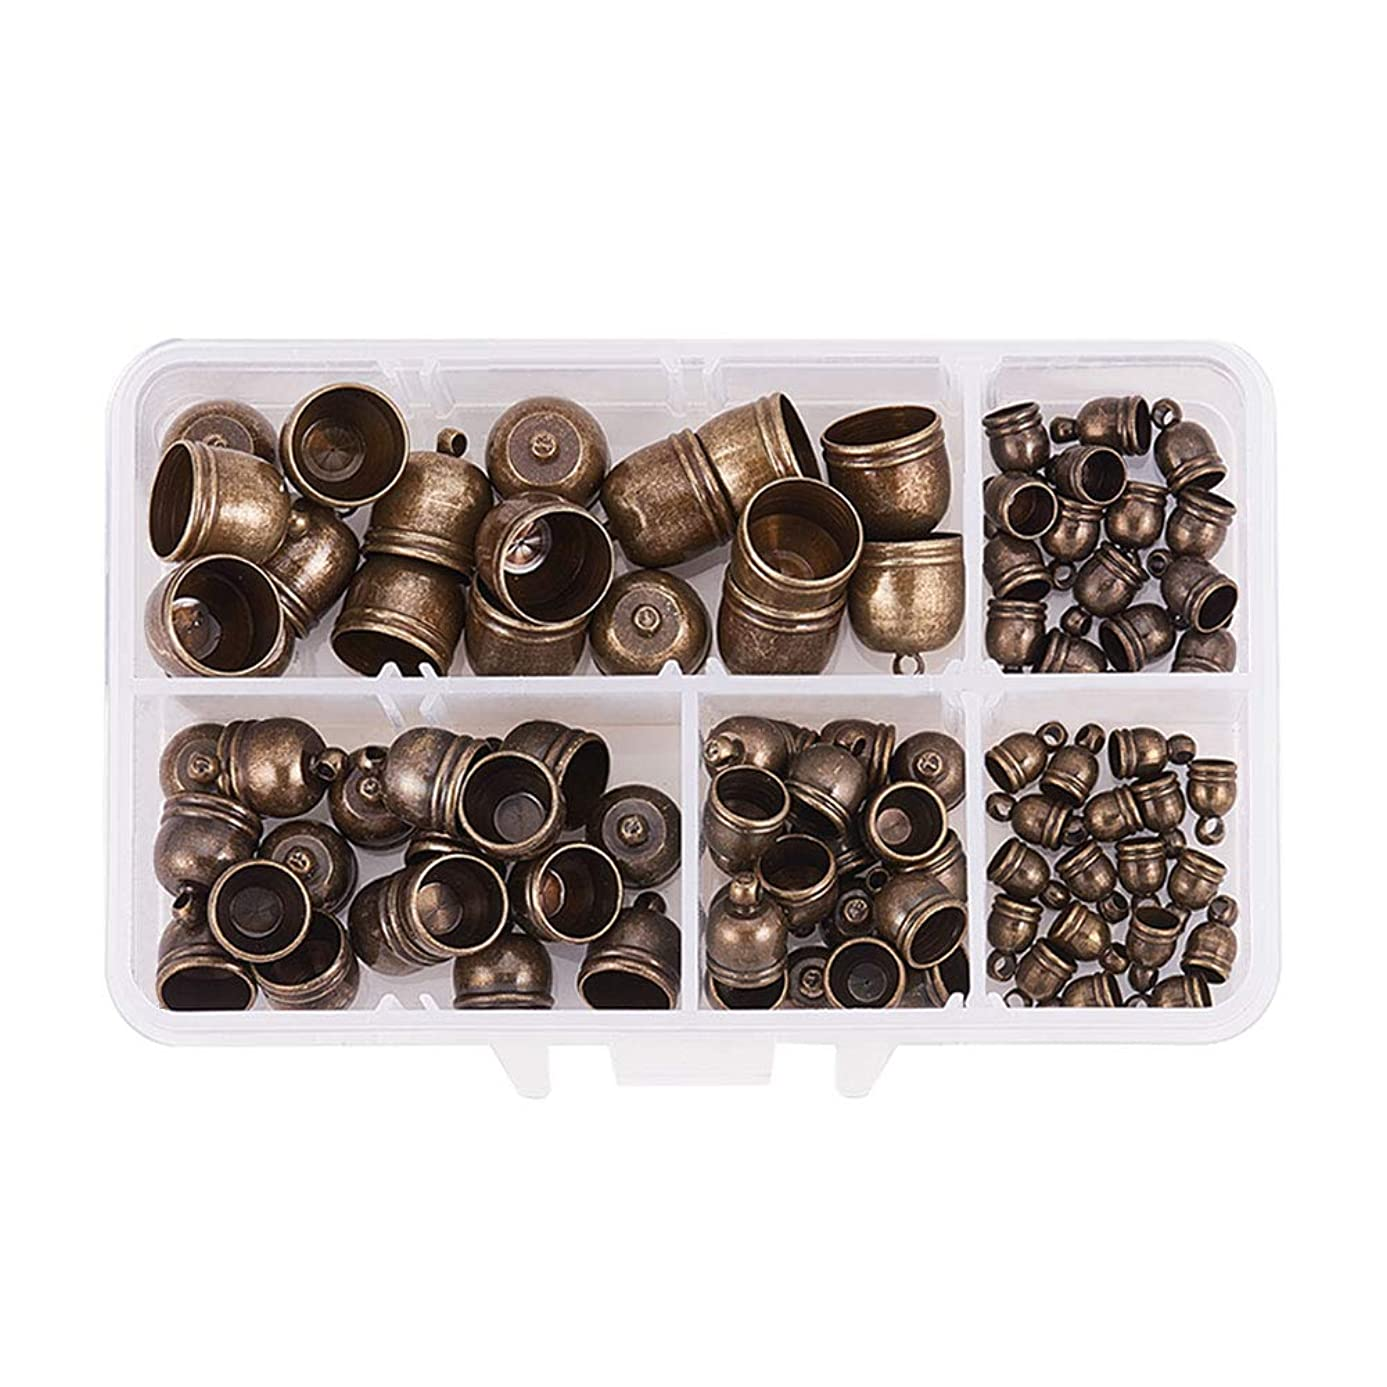 PH PandaHall 100pcs 5 Size Antique Bronze Brass Leather Ends Cord Glue in Barrel End Caps, Leather Cord Kit for Kumihimo Jewelry and Tassel Making(8mm, 9mm, 10mm, 12mm, 14mm)